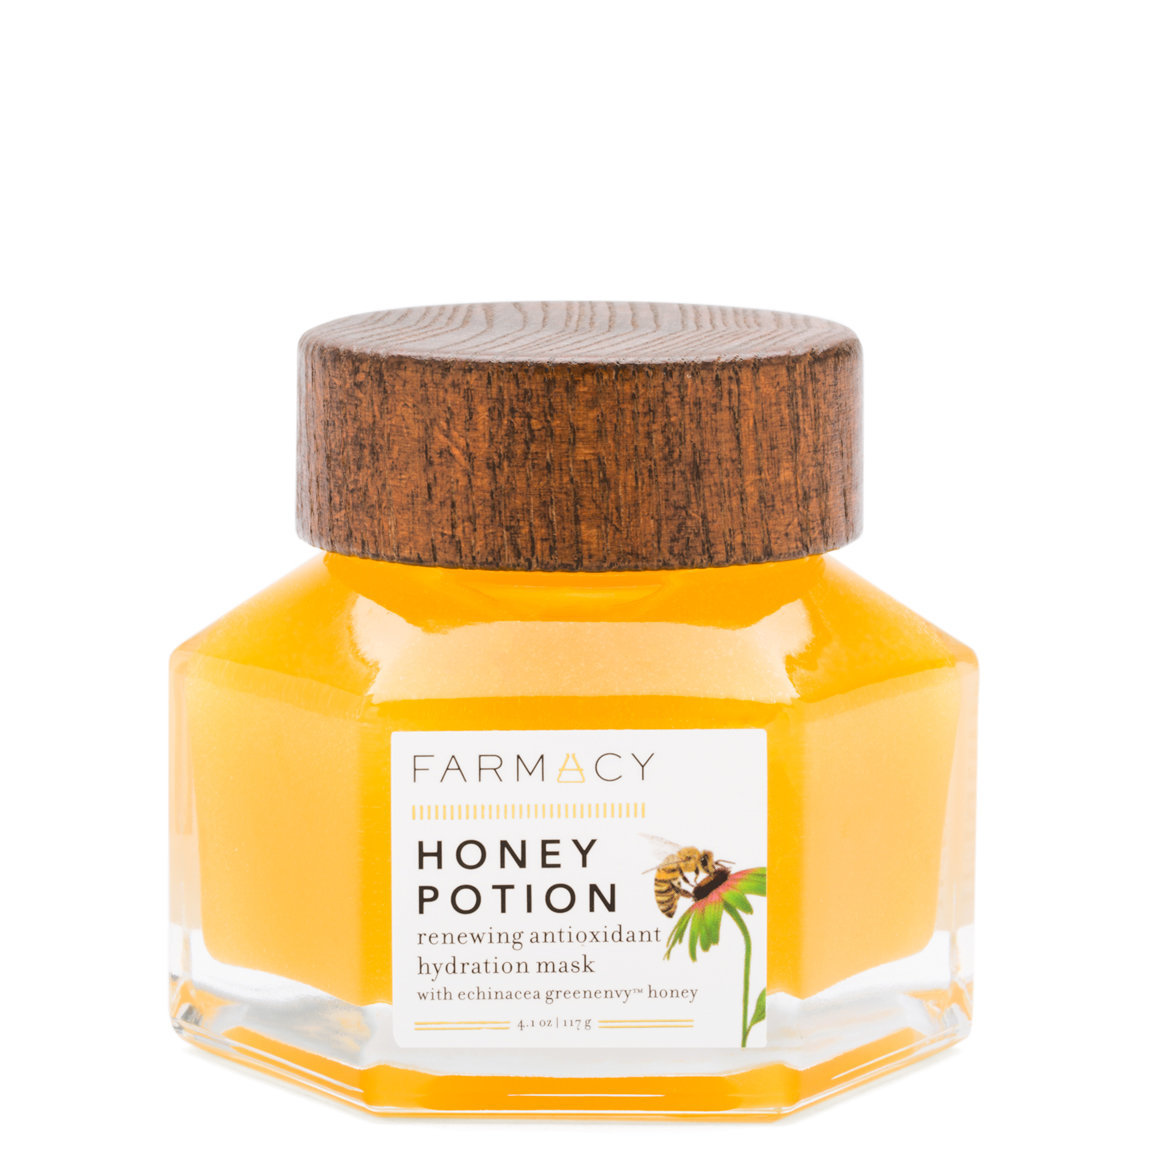 Farmacy Honey Potion Renewing Antioxidant Hydration Mask 4.1 oz product swatch.